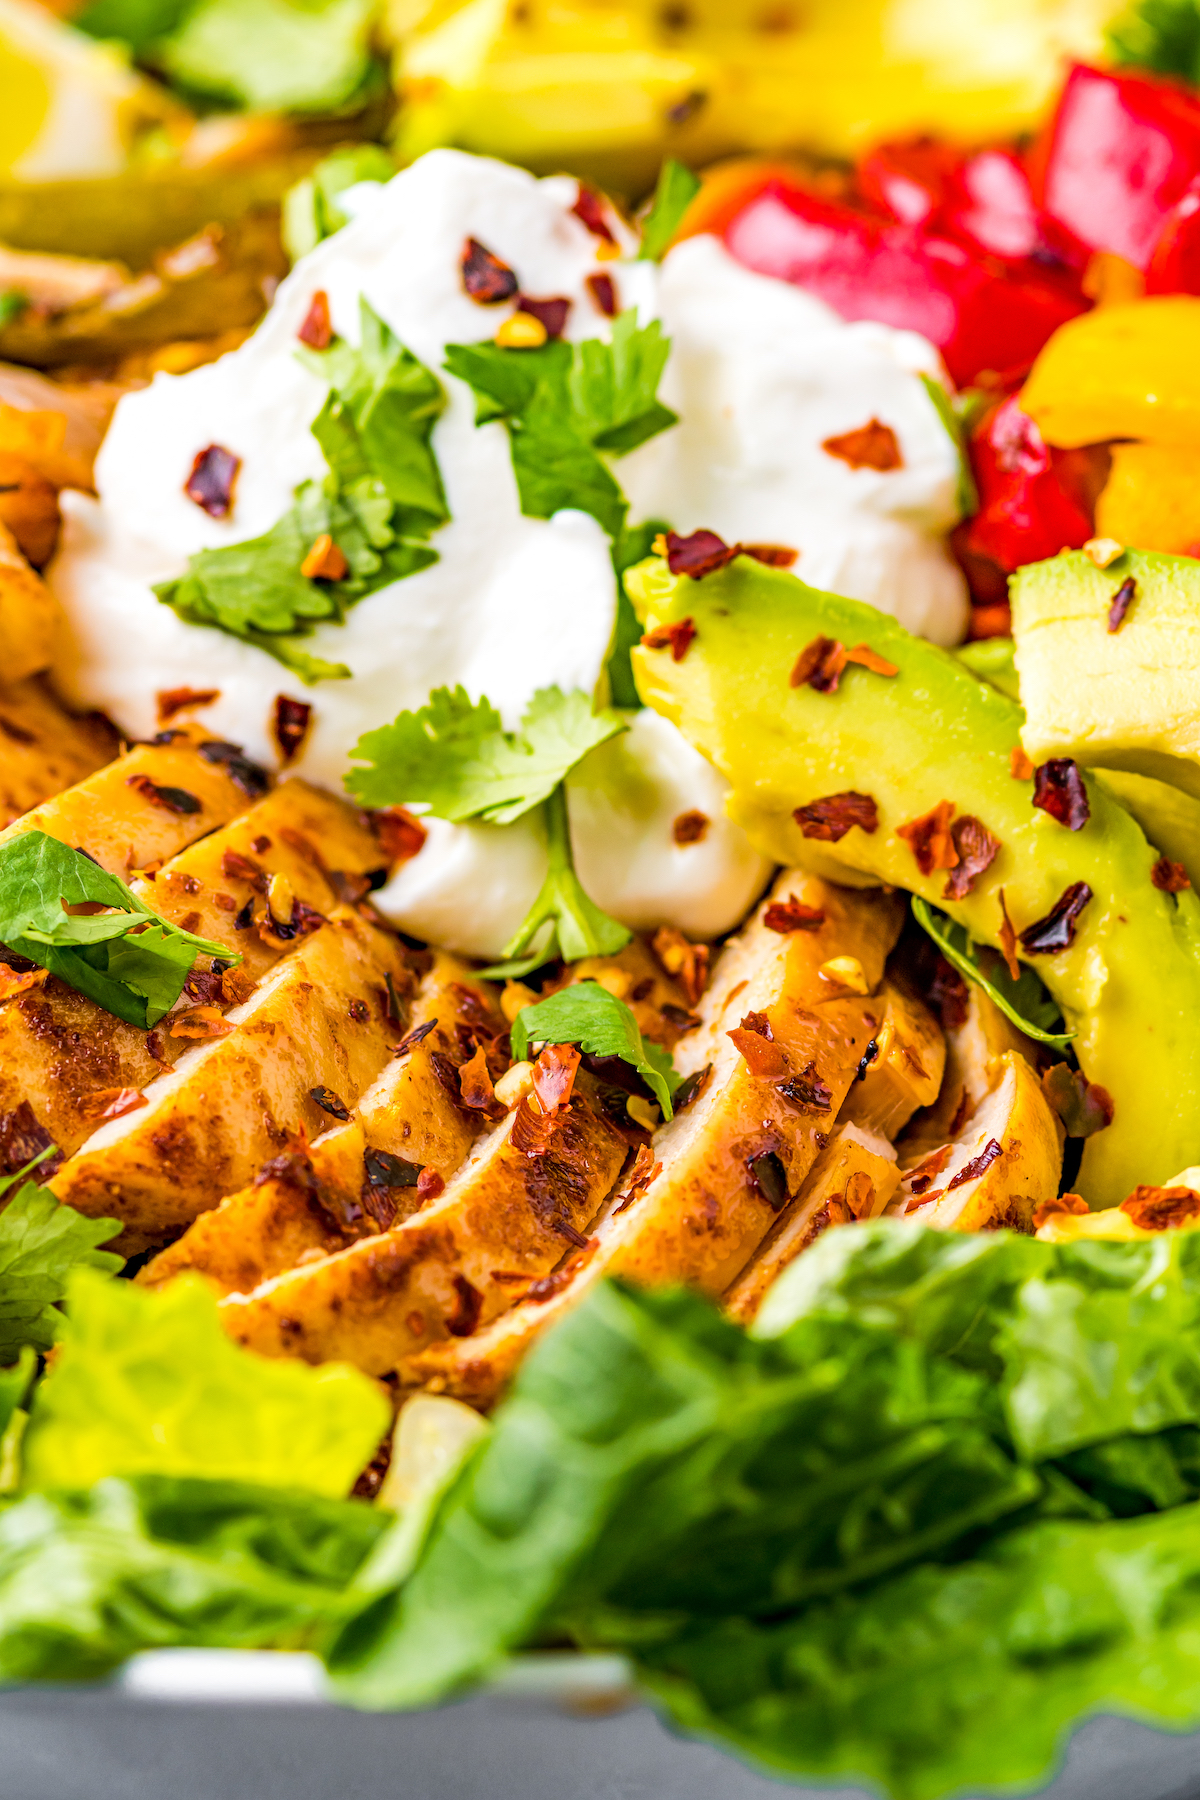 Chicken fajita salad with sour cream.